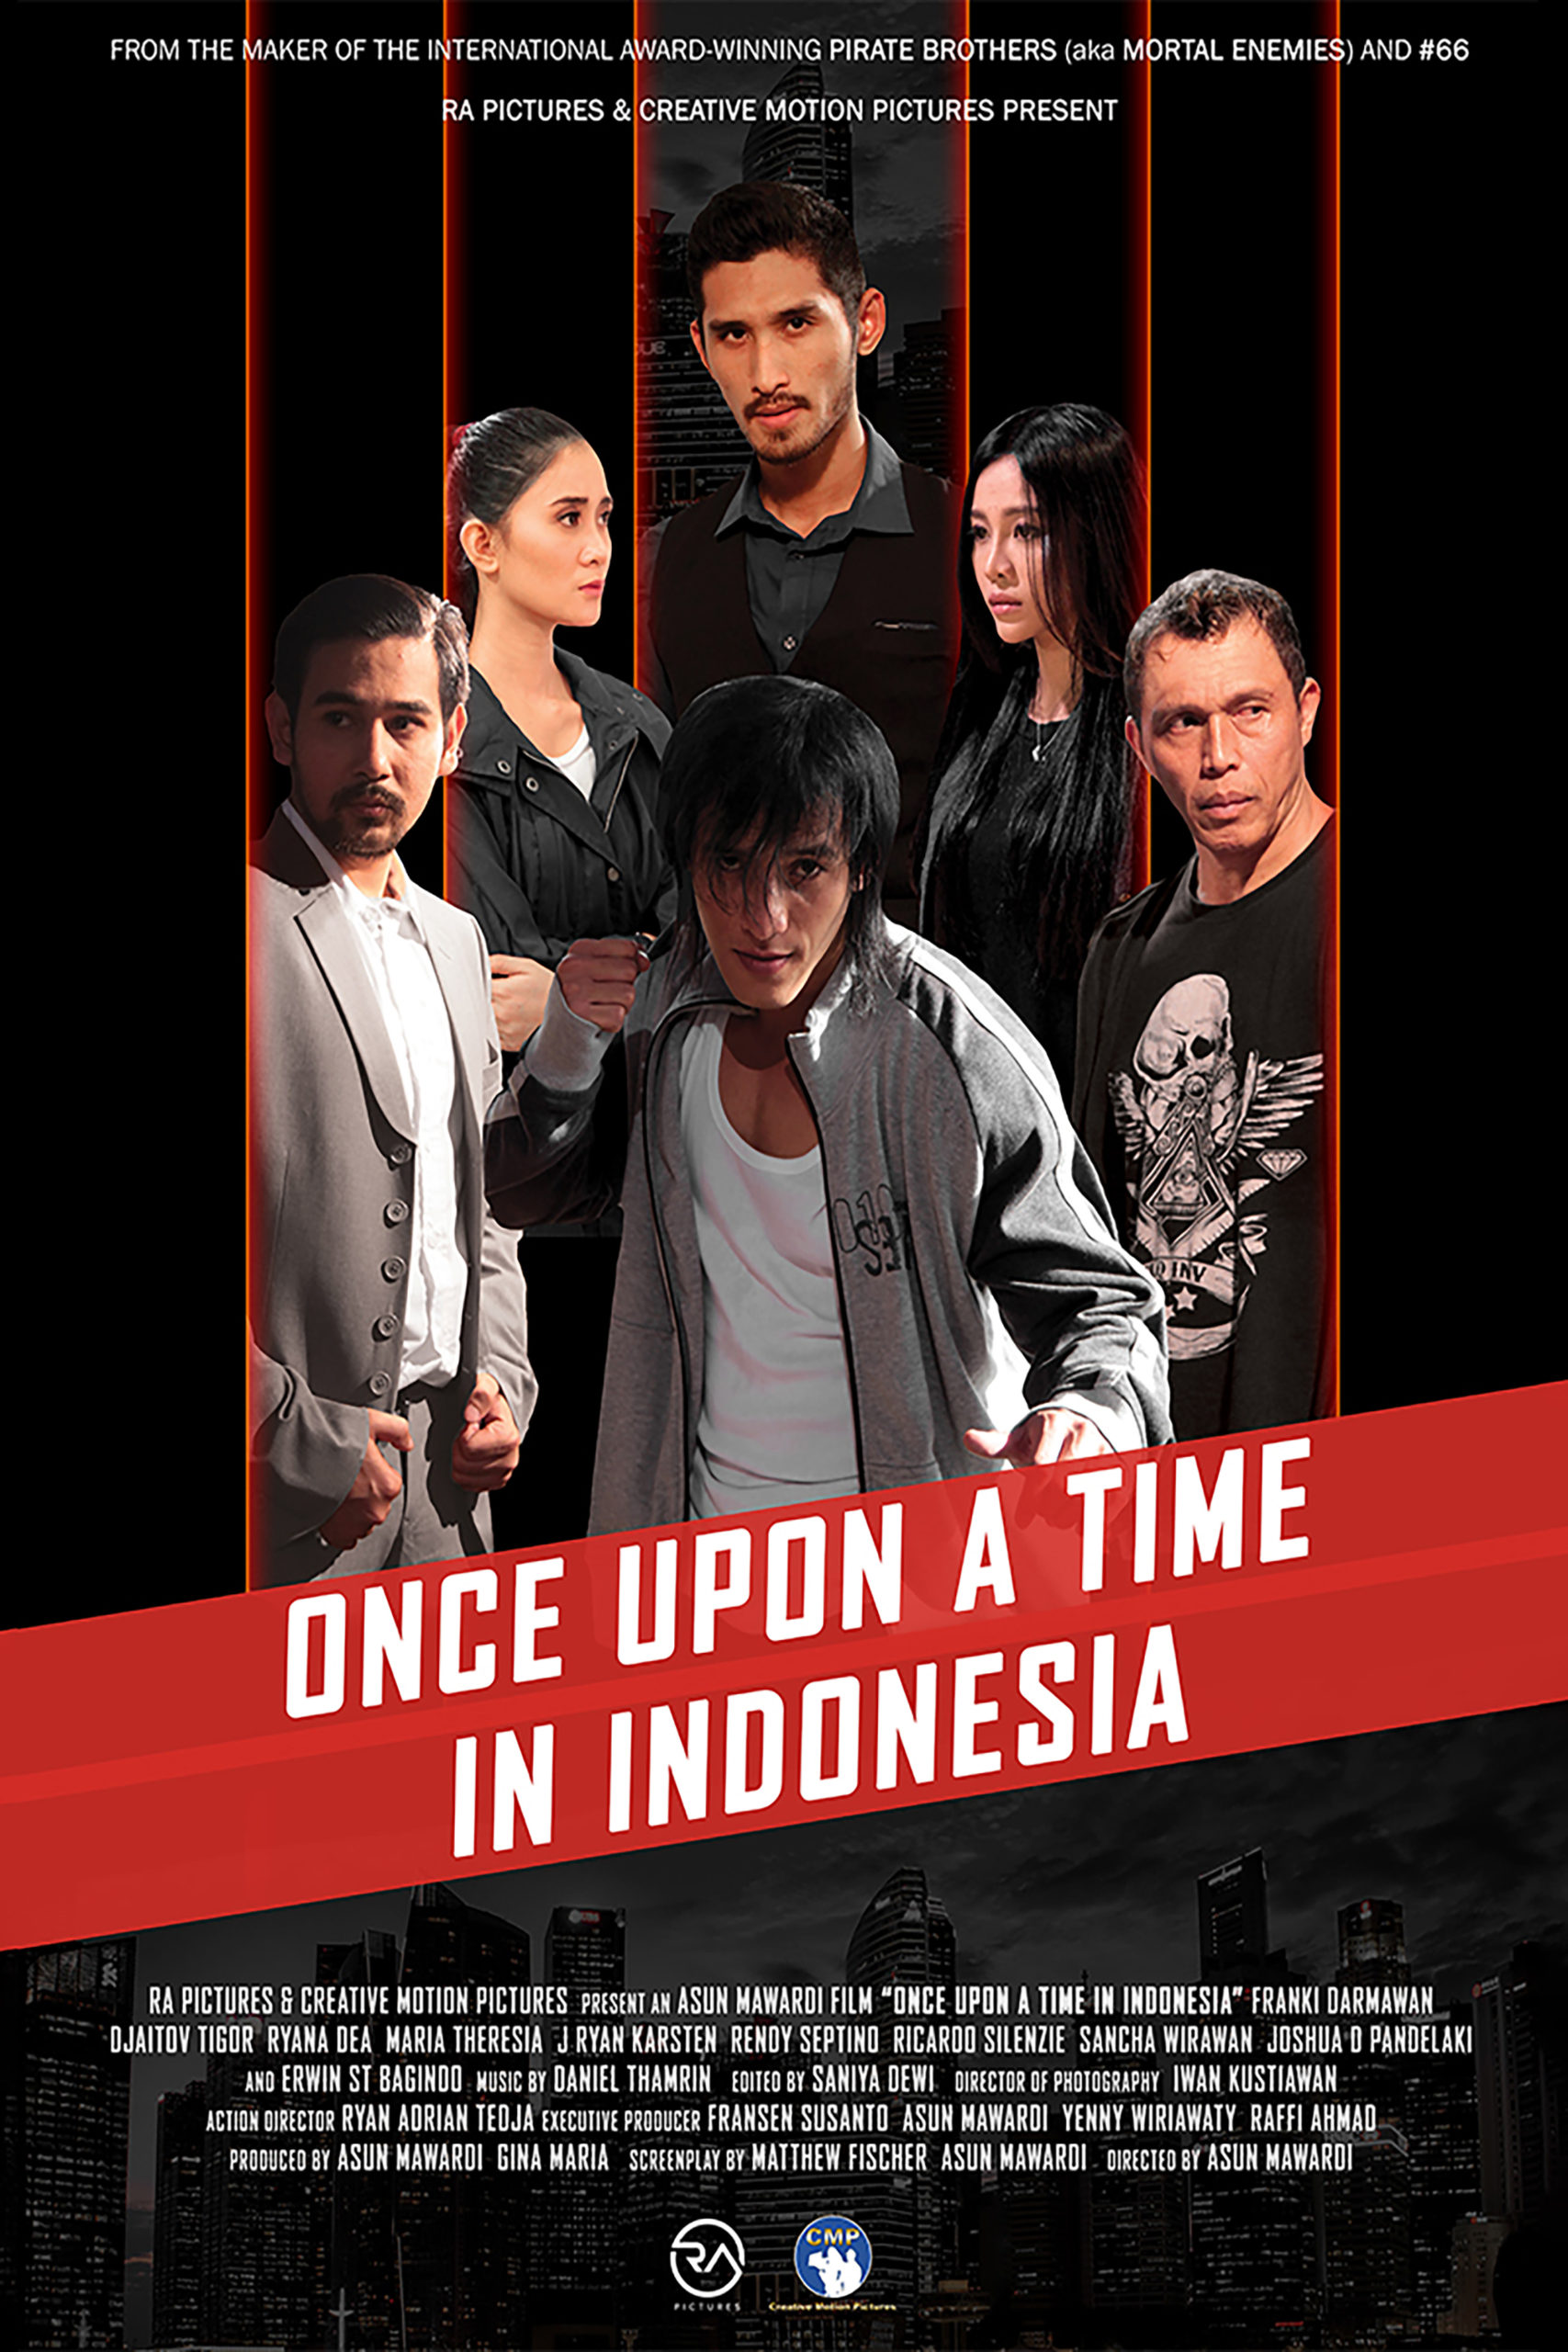 Once Upon a Time in Indonesia [2020 Indonesia Movie] Action, Crime, Thriller